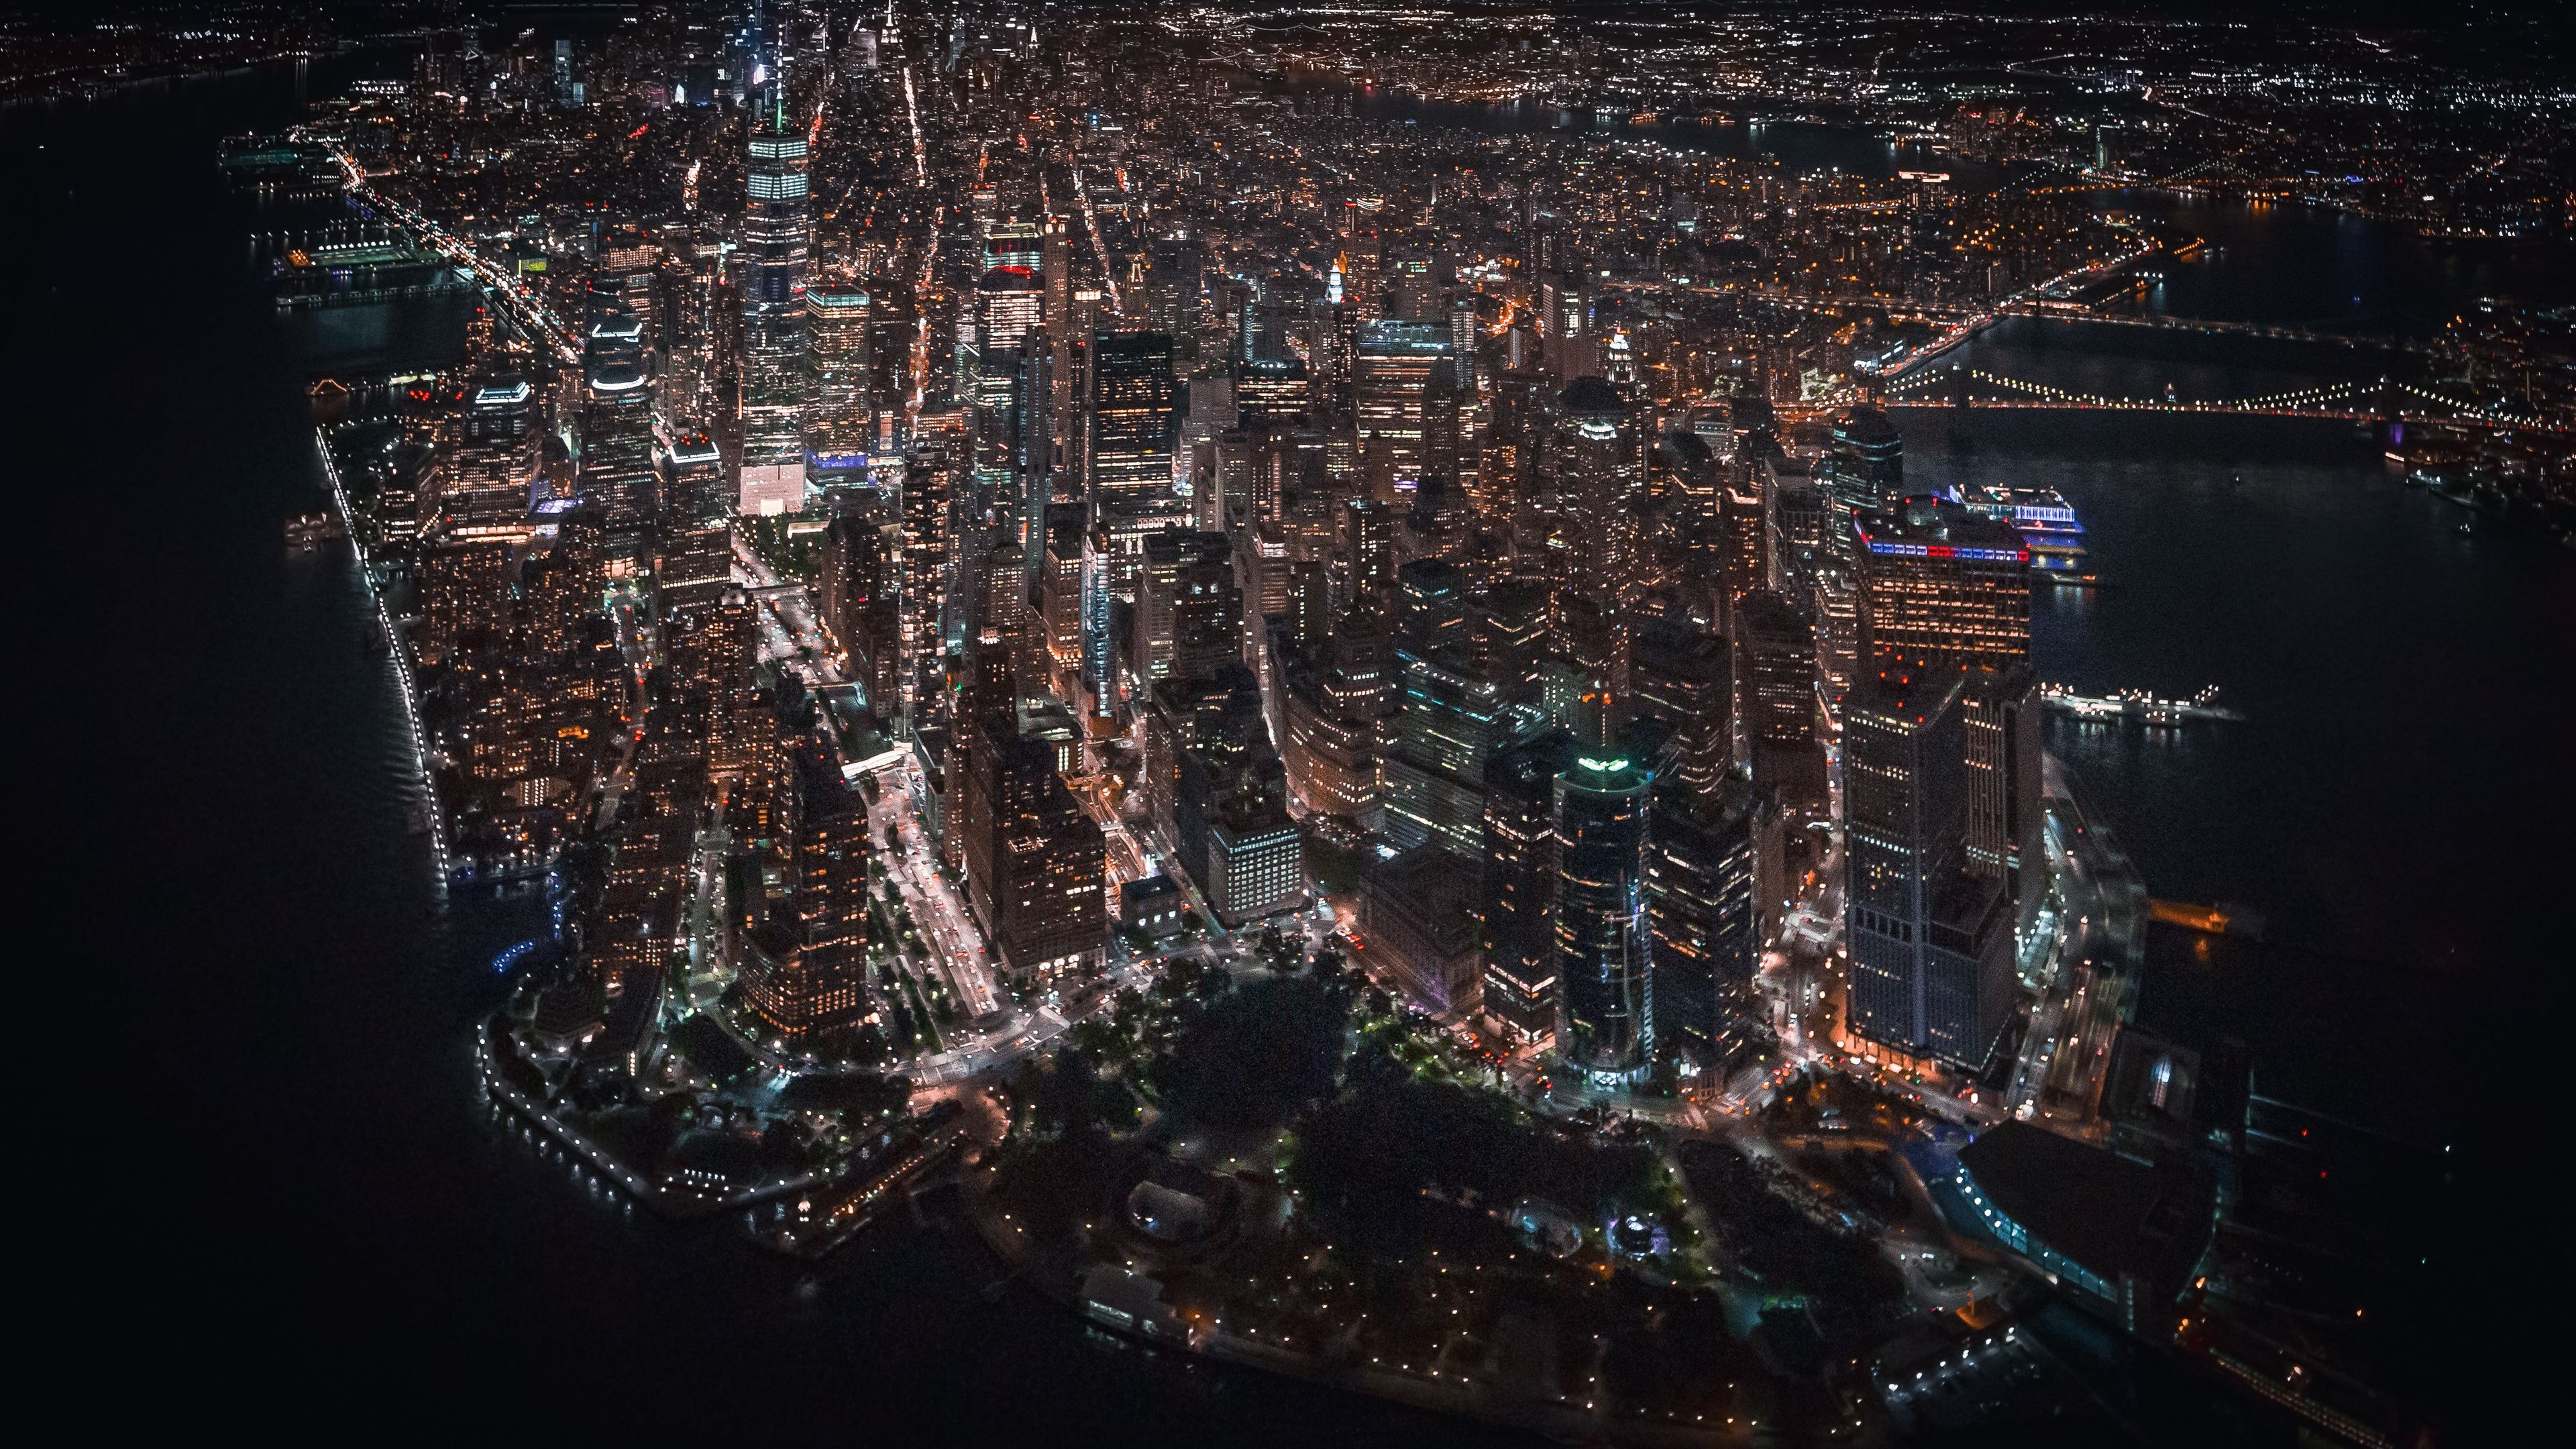 Wallpaper 4k Nyc Downtown Helicopter View 4k Wallpapers Buildings Wallpapers Hd Wallpapers New York Wallpapers Night Wallpapers World Wallpapers